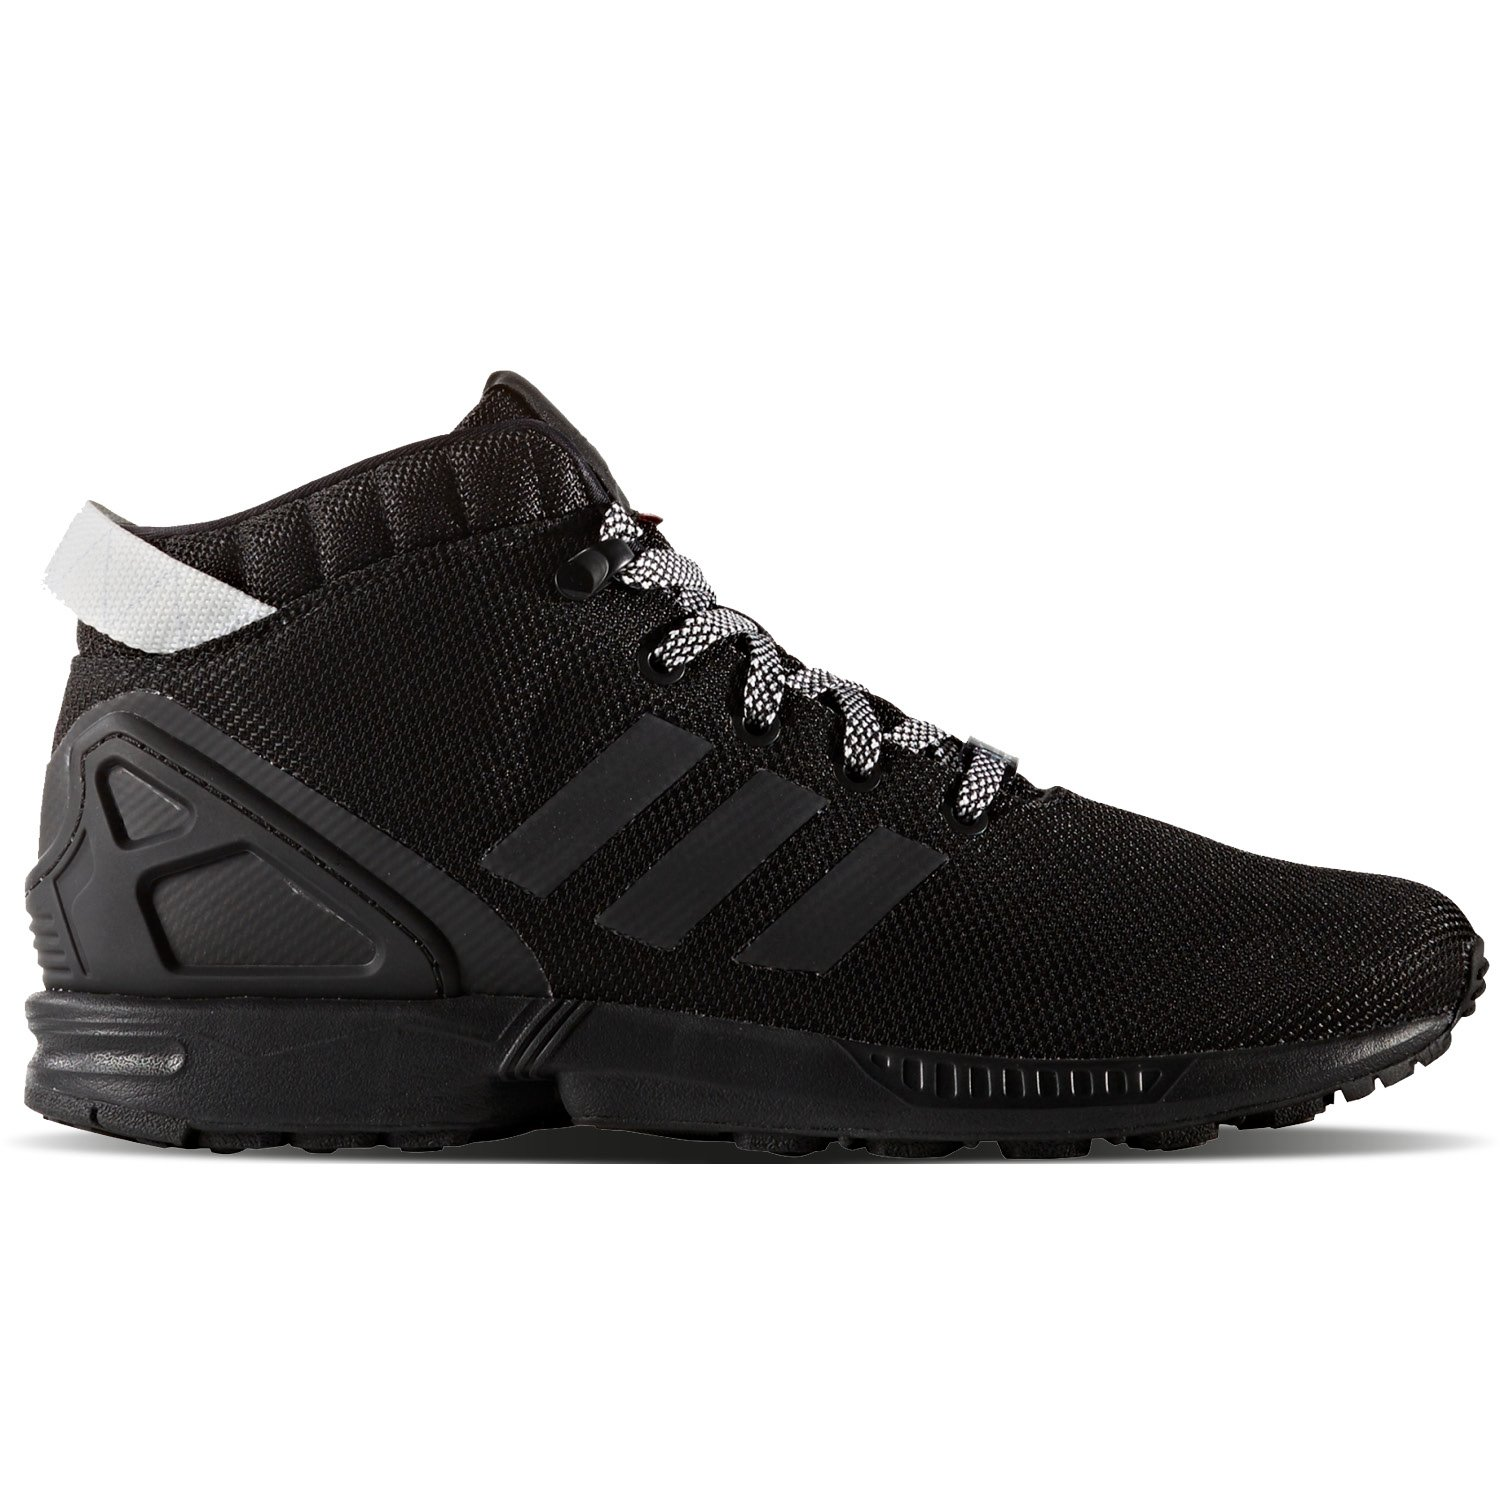 purchase adidas zx flux 5 b6d01 abf23